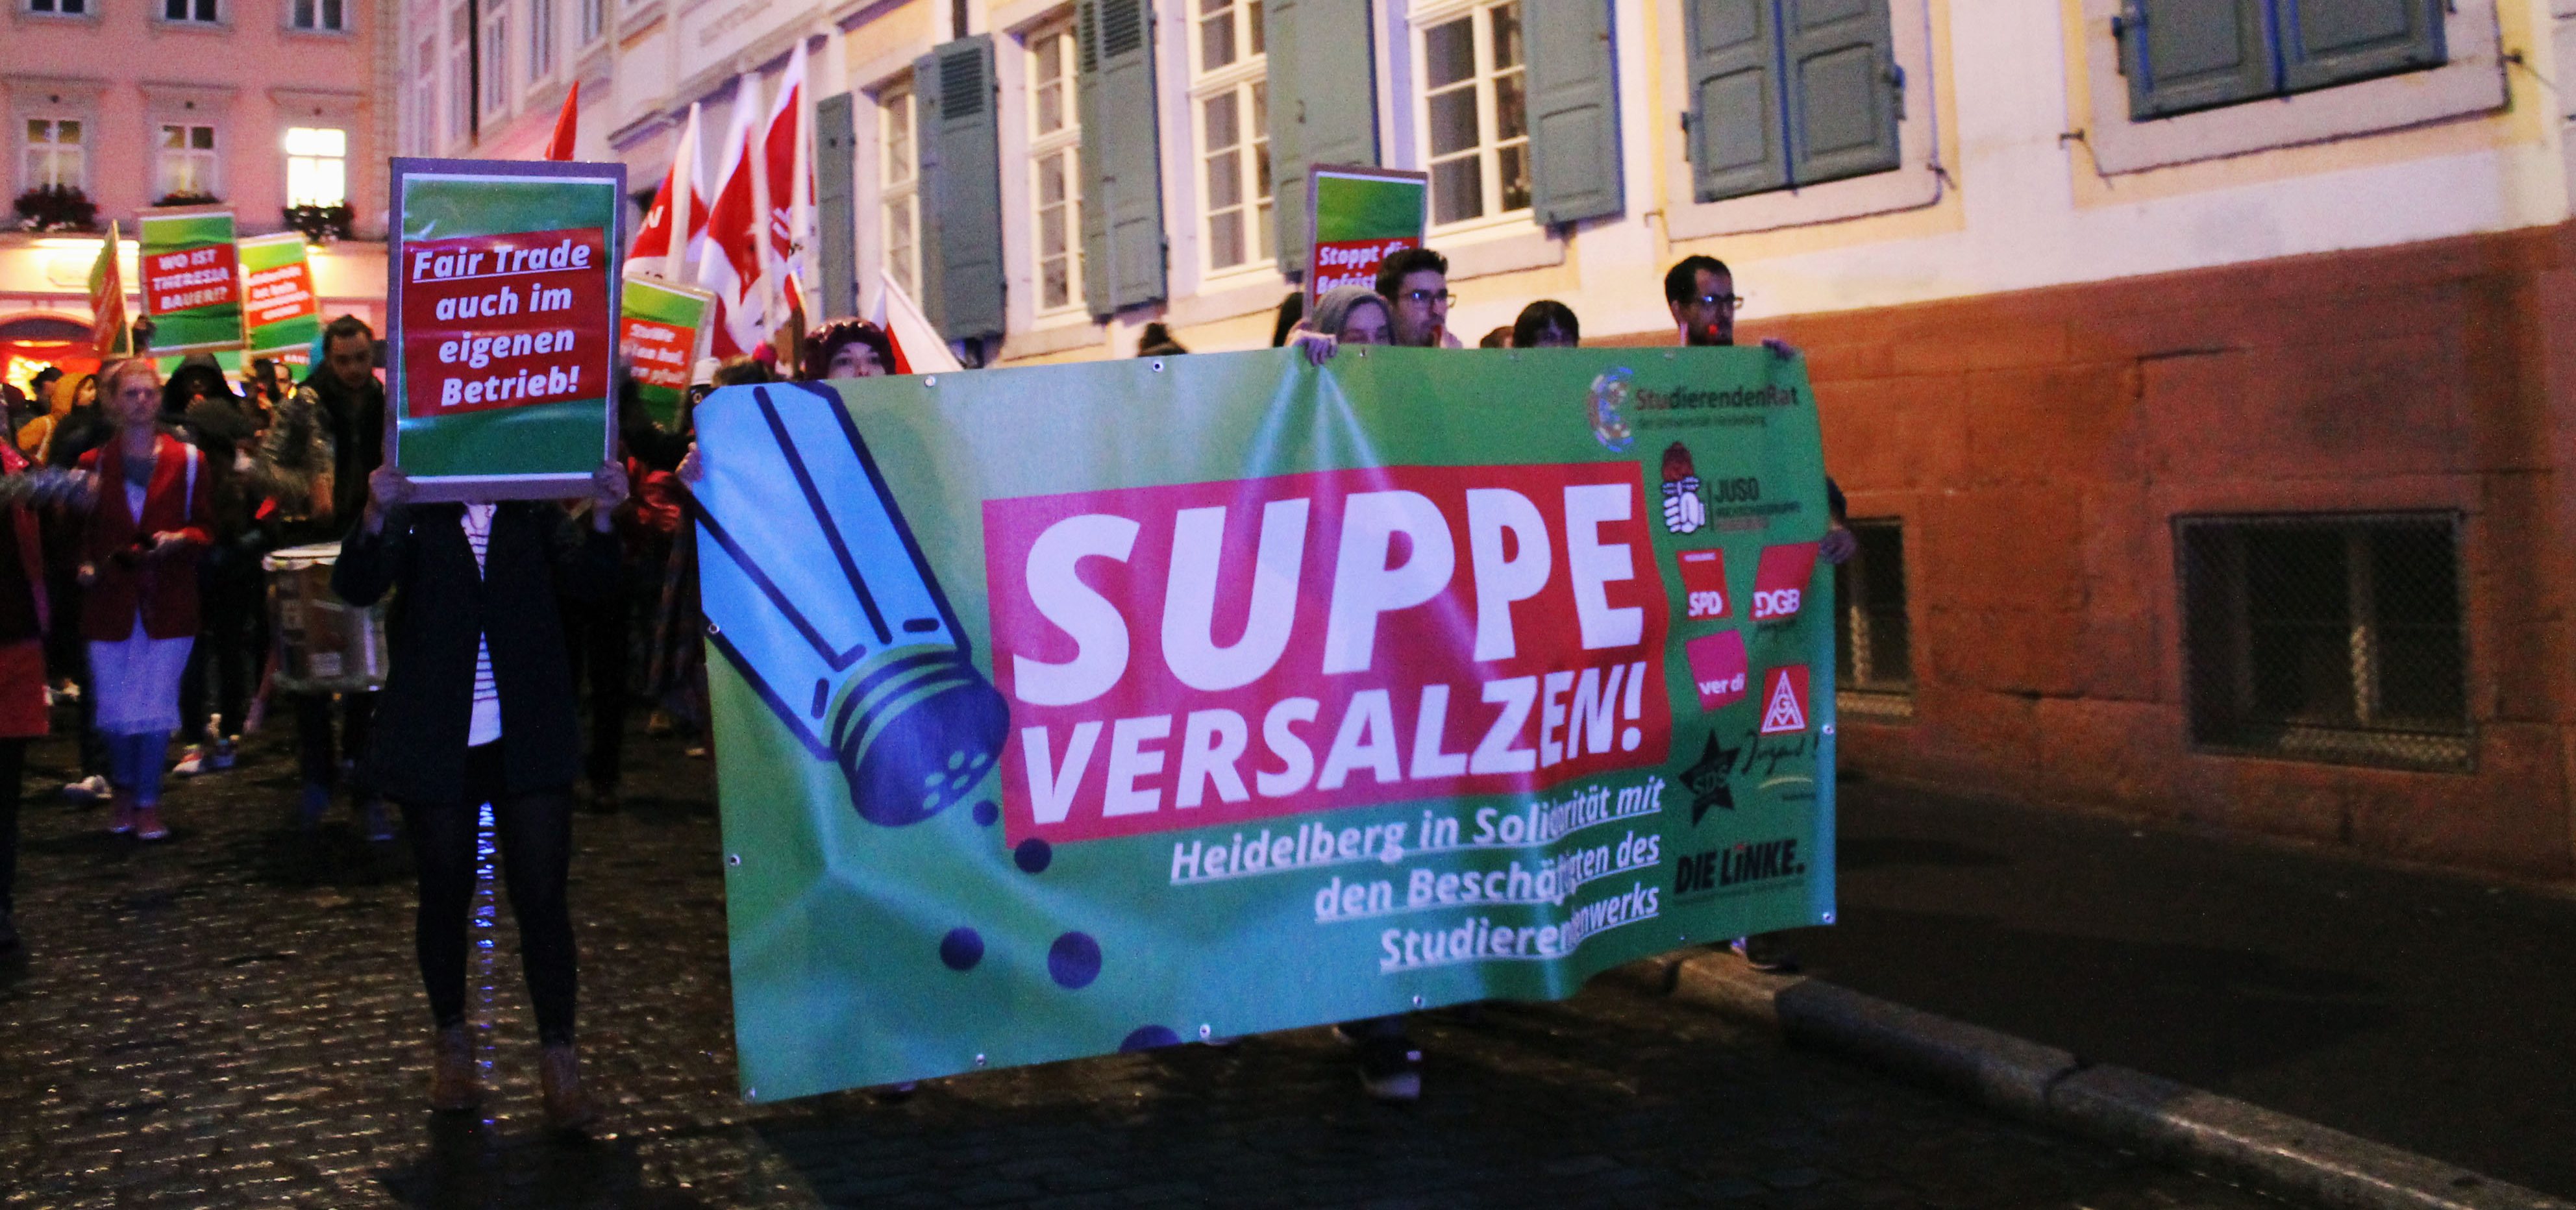 """Suppe versalzen!"""